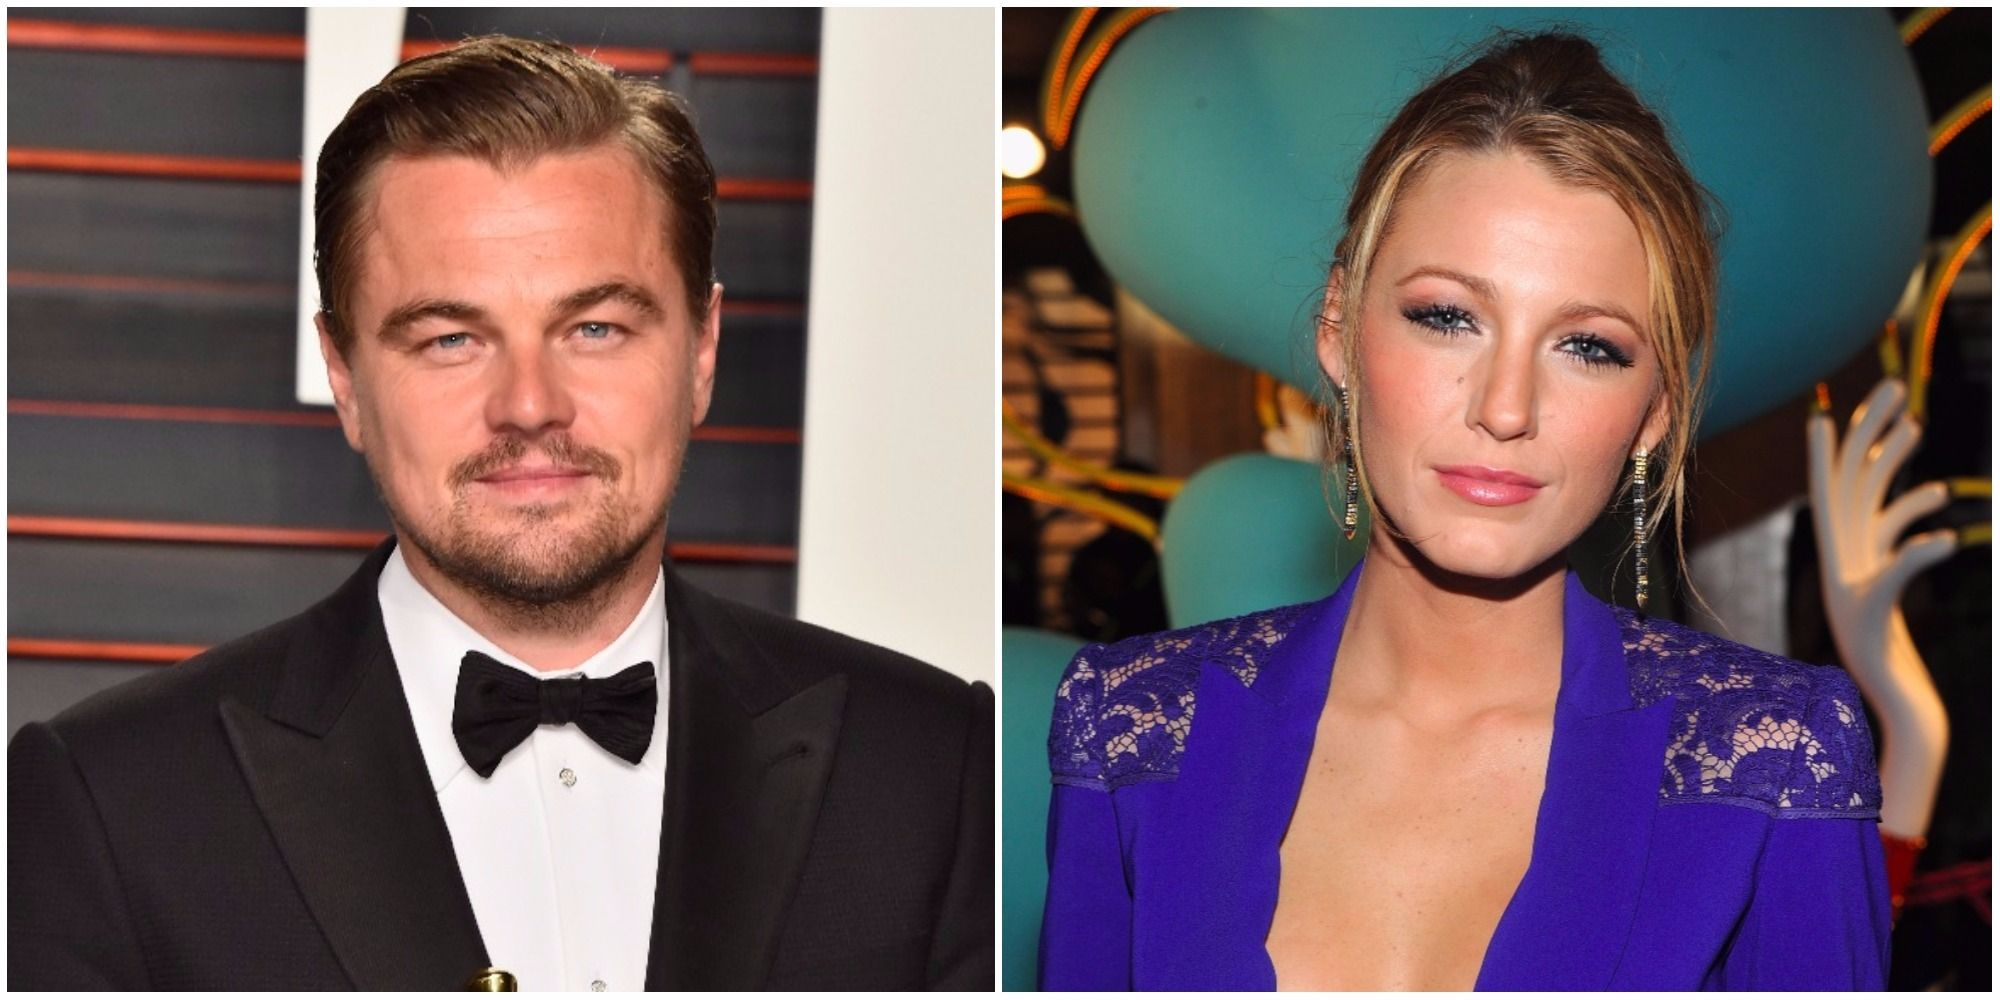 Blake Lively Sent Pictures Of Dolls To Leonardo Dicaprio And Were